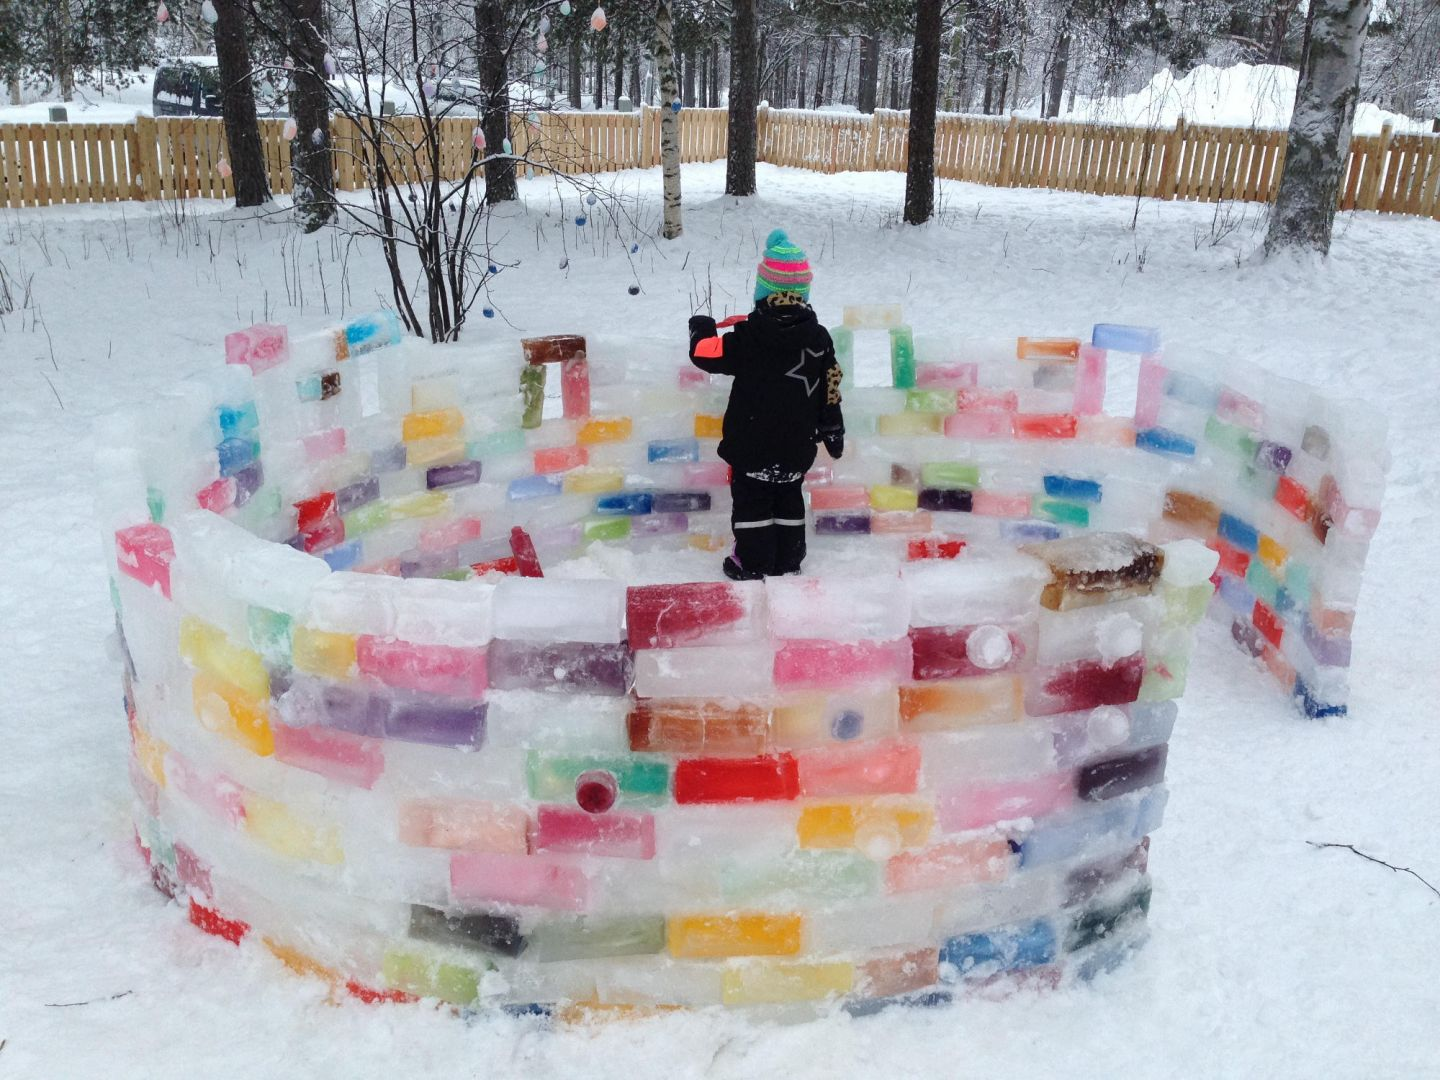 Color igloo made from colored ice in Finland